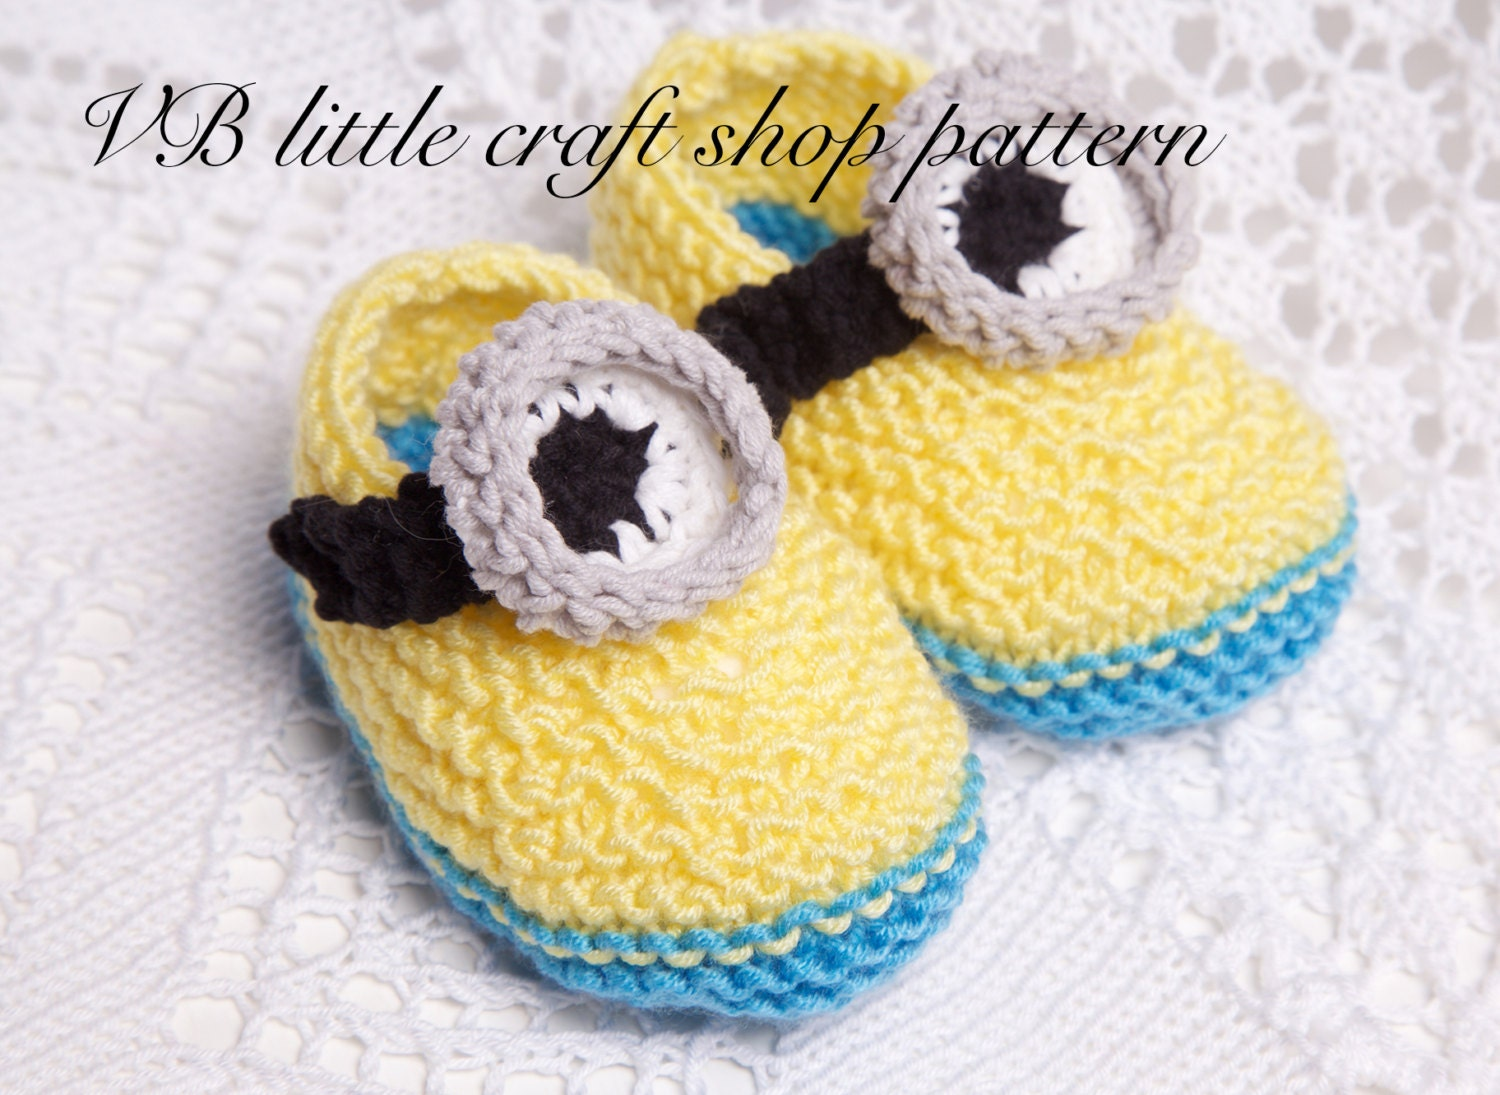 Minion booties knitting/crochet pattern. by VBlittlecraftshop